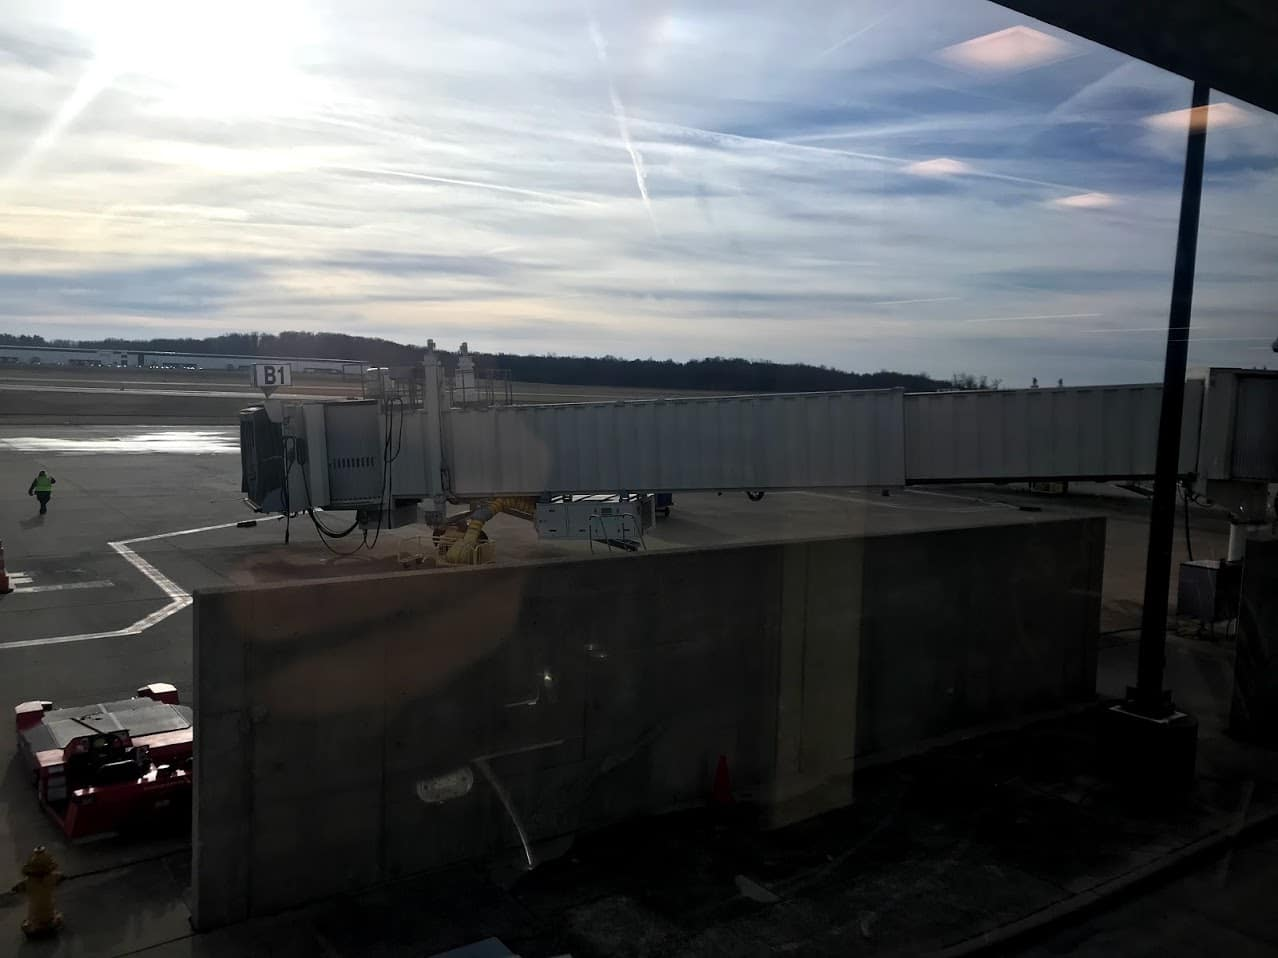 Jet Bridge with no airplane